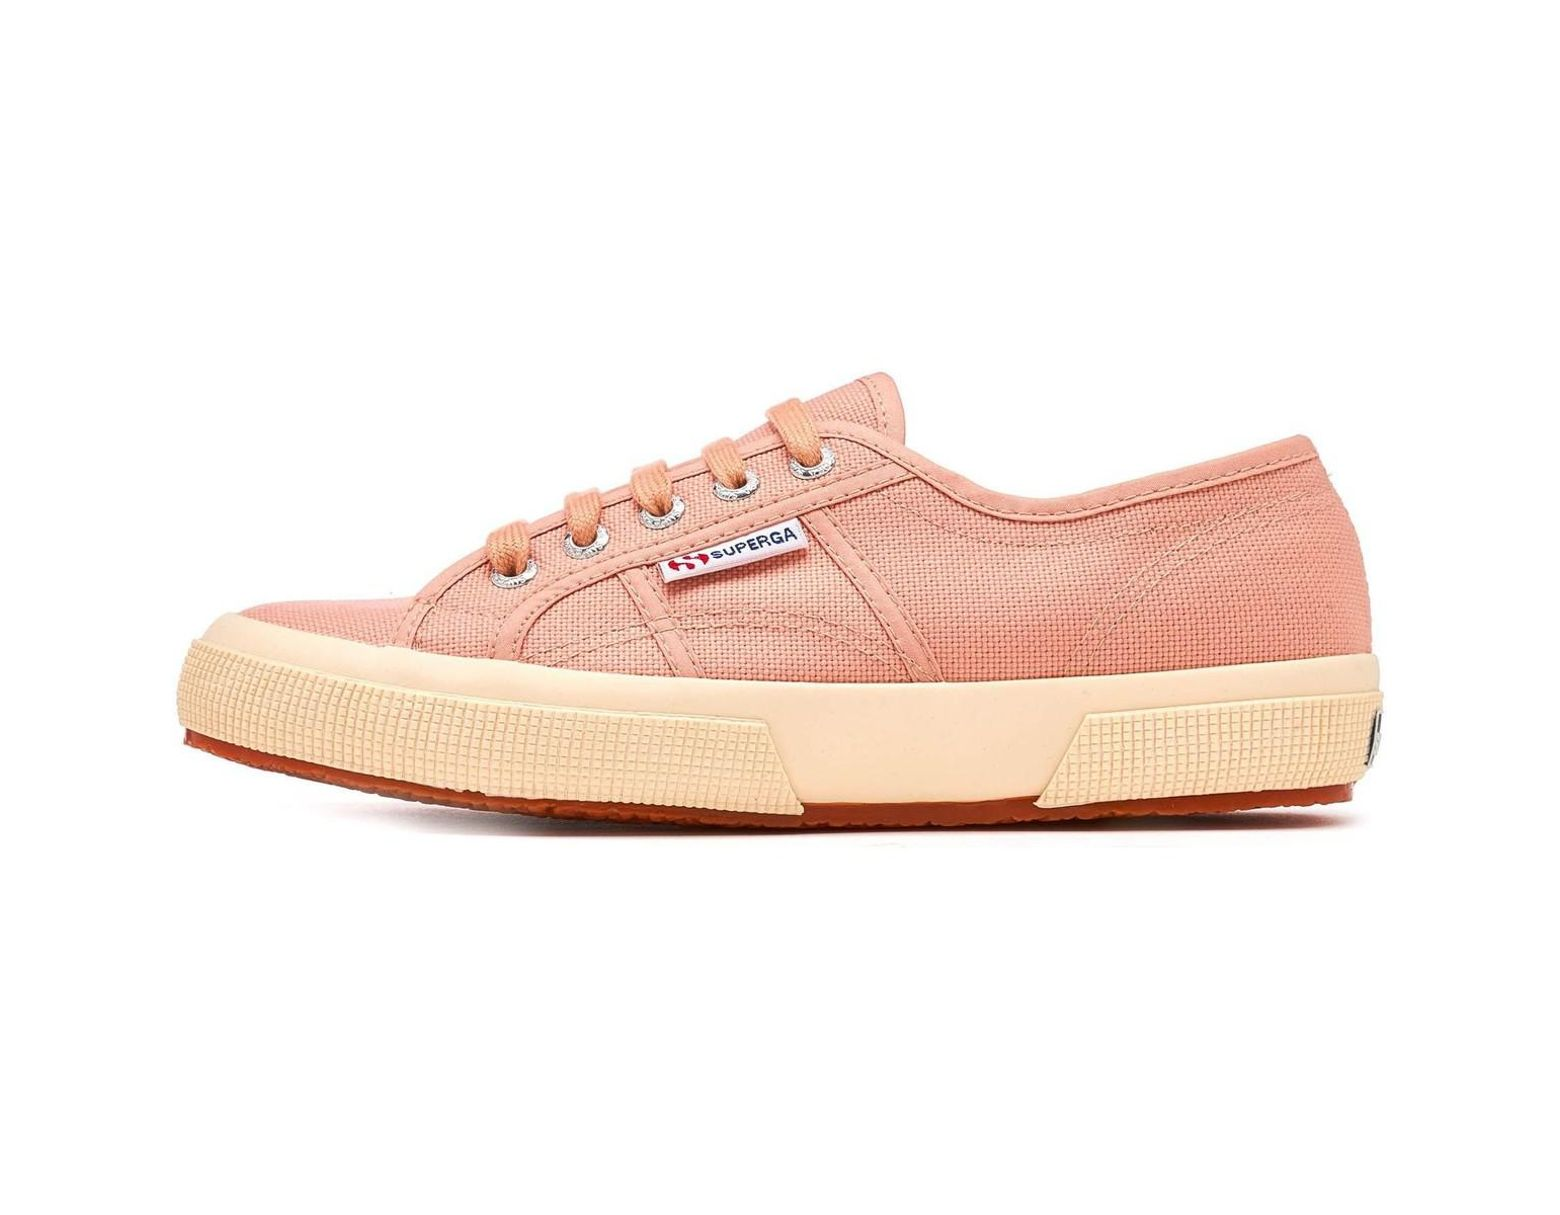 5345b45b86ae Superga 2750 Cotu Classic Canvas Shoes In Rose Mahogany G29 Women s Shoes  (trainers) In Pink in Pink - Lyst